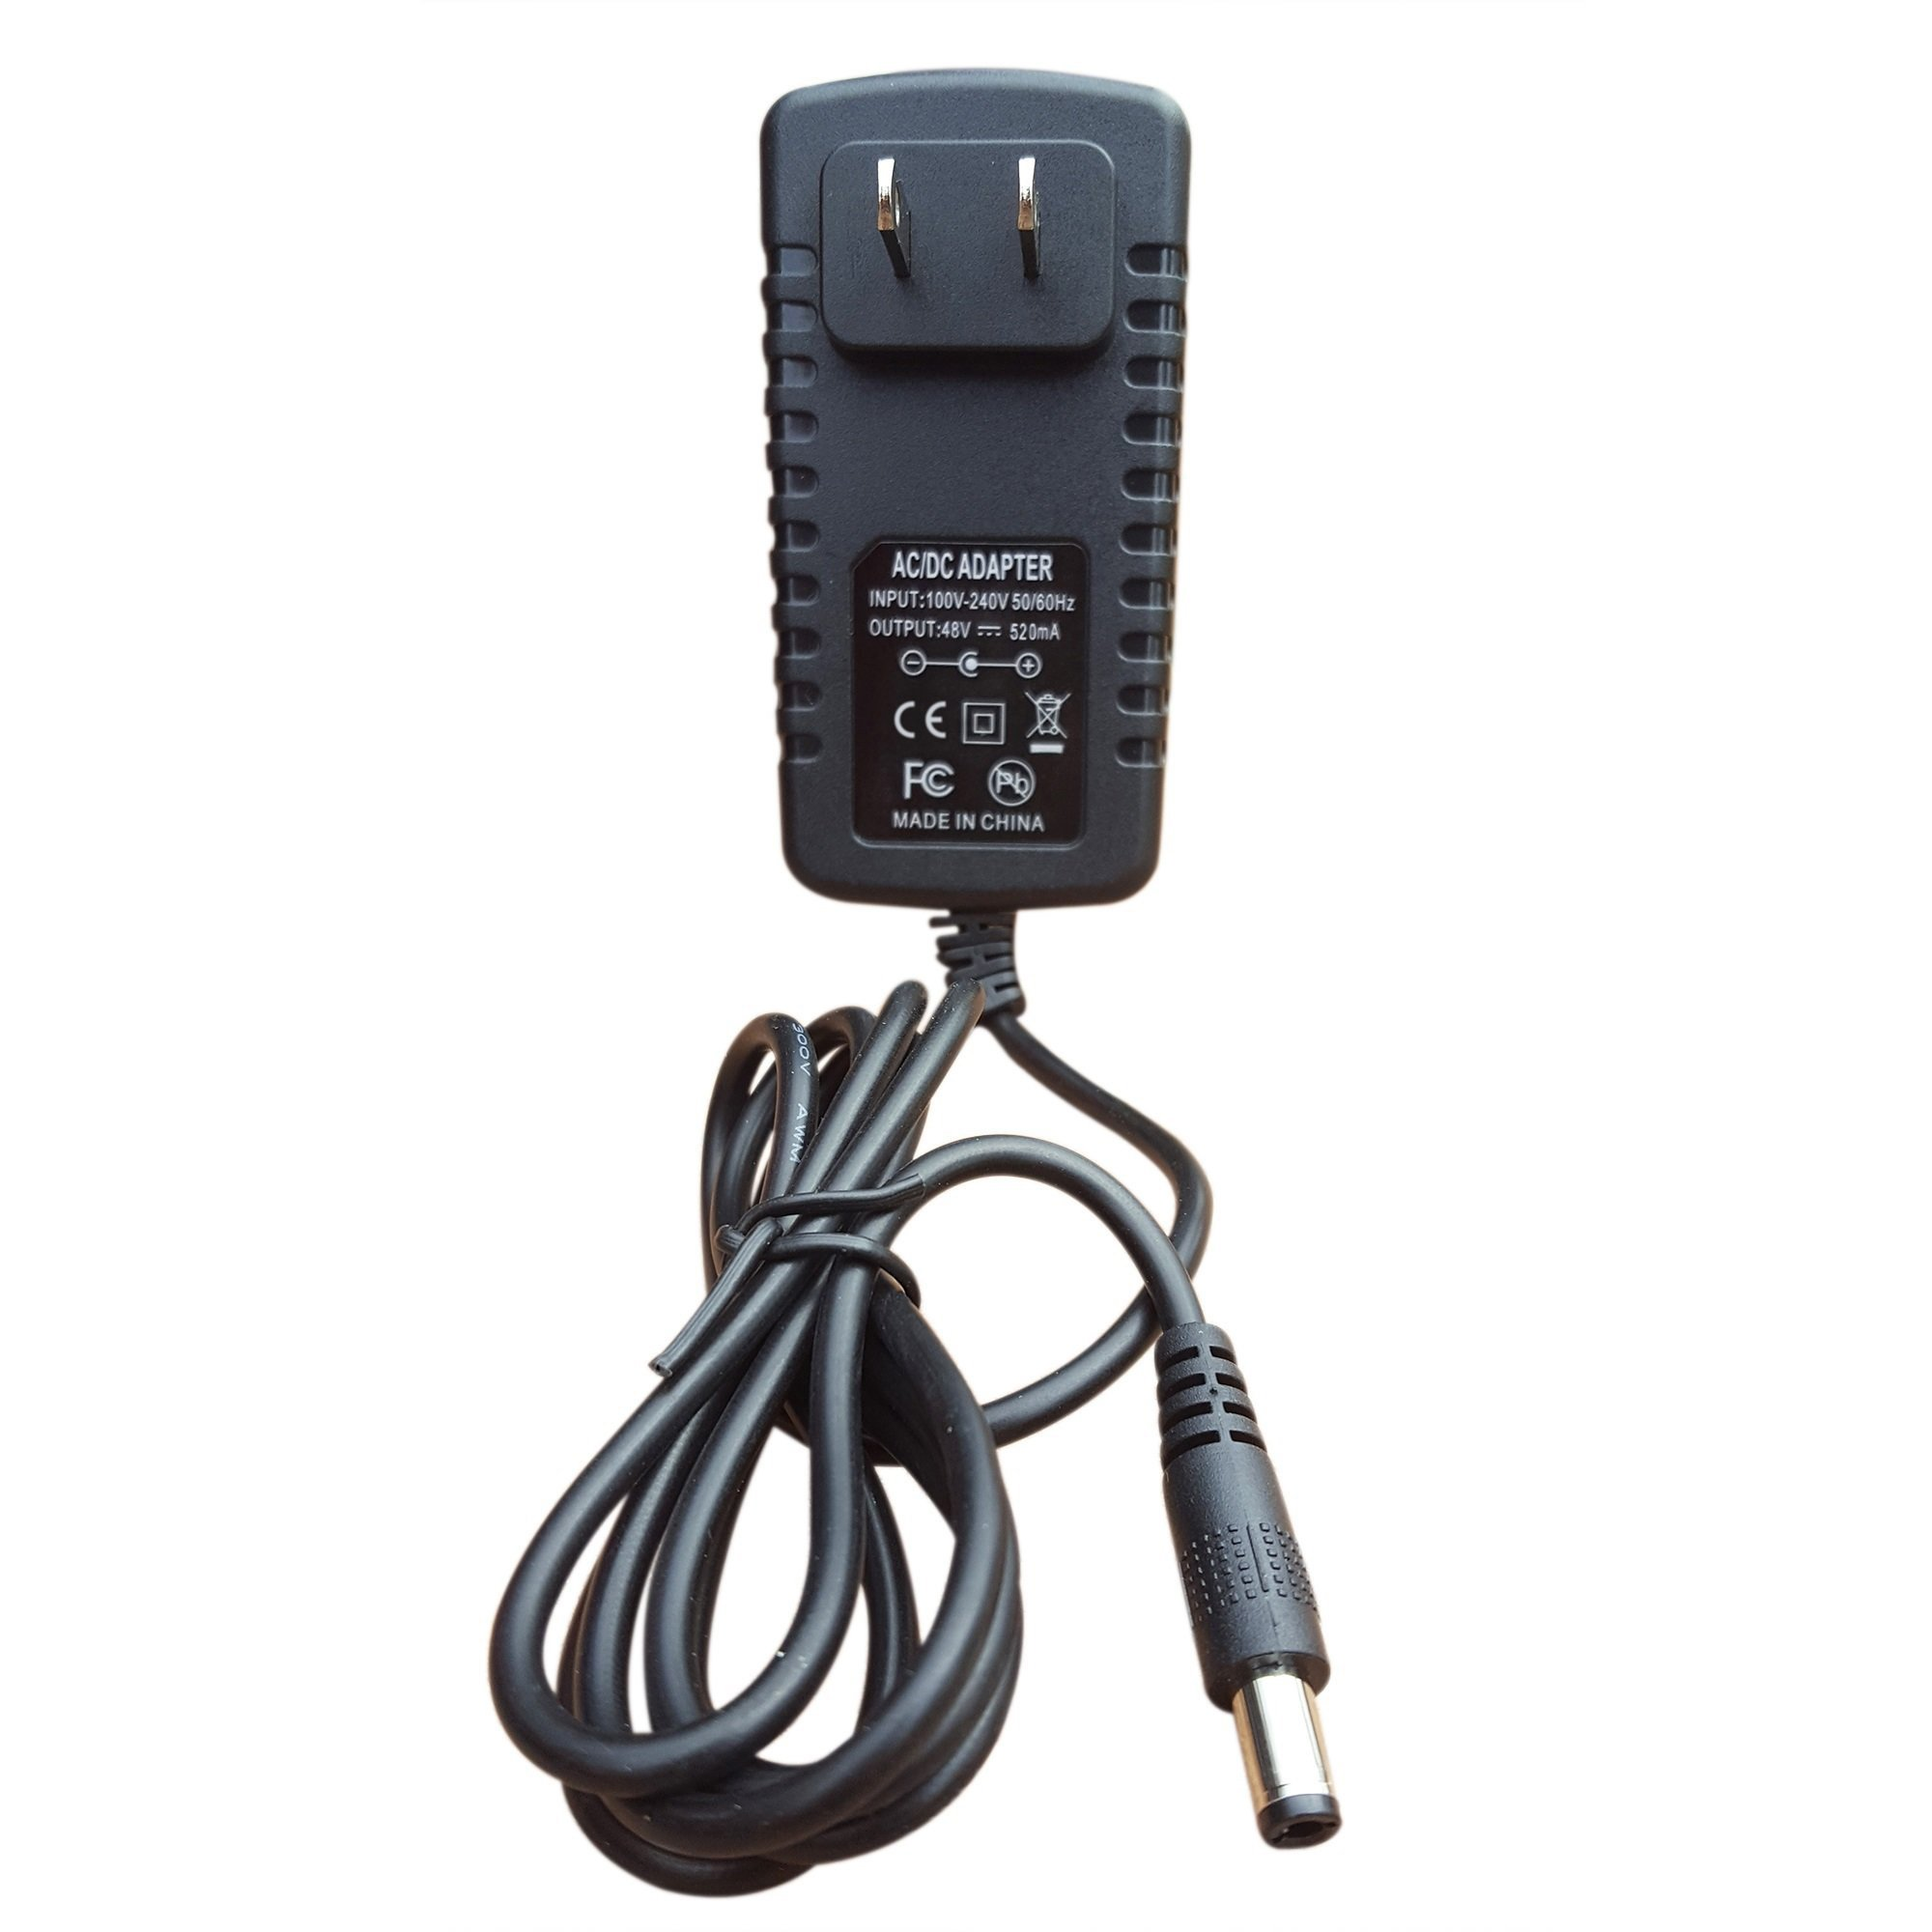 NeuPo 48 Volt Power Supply (25W)   Compatible with Nortel - Avaya IP Phones 1110, 1120e, 1140e, 1210, 1220, 1230 and Polycom VVX 500, 501, 600, 601   VOIP Power Adapter for Avaya 1100 & 1200 Series by NEUPO